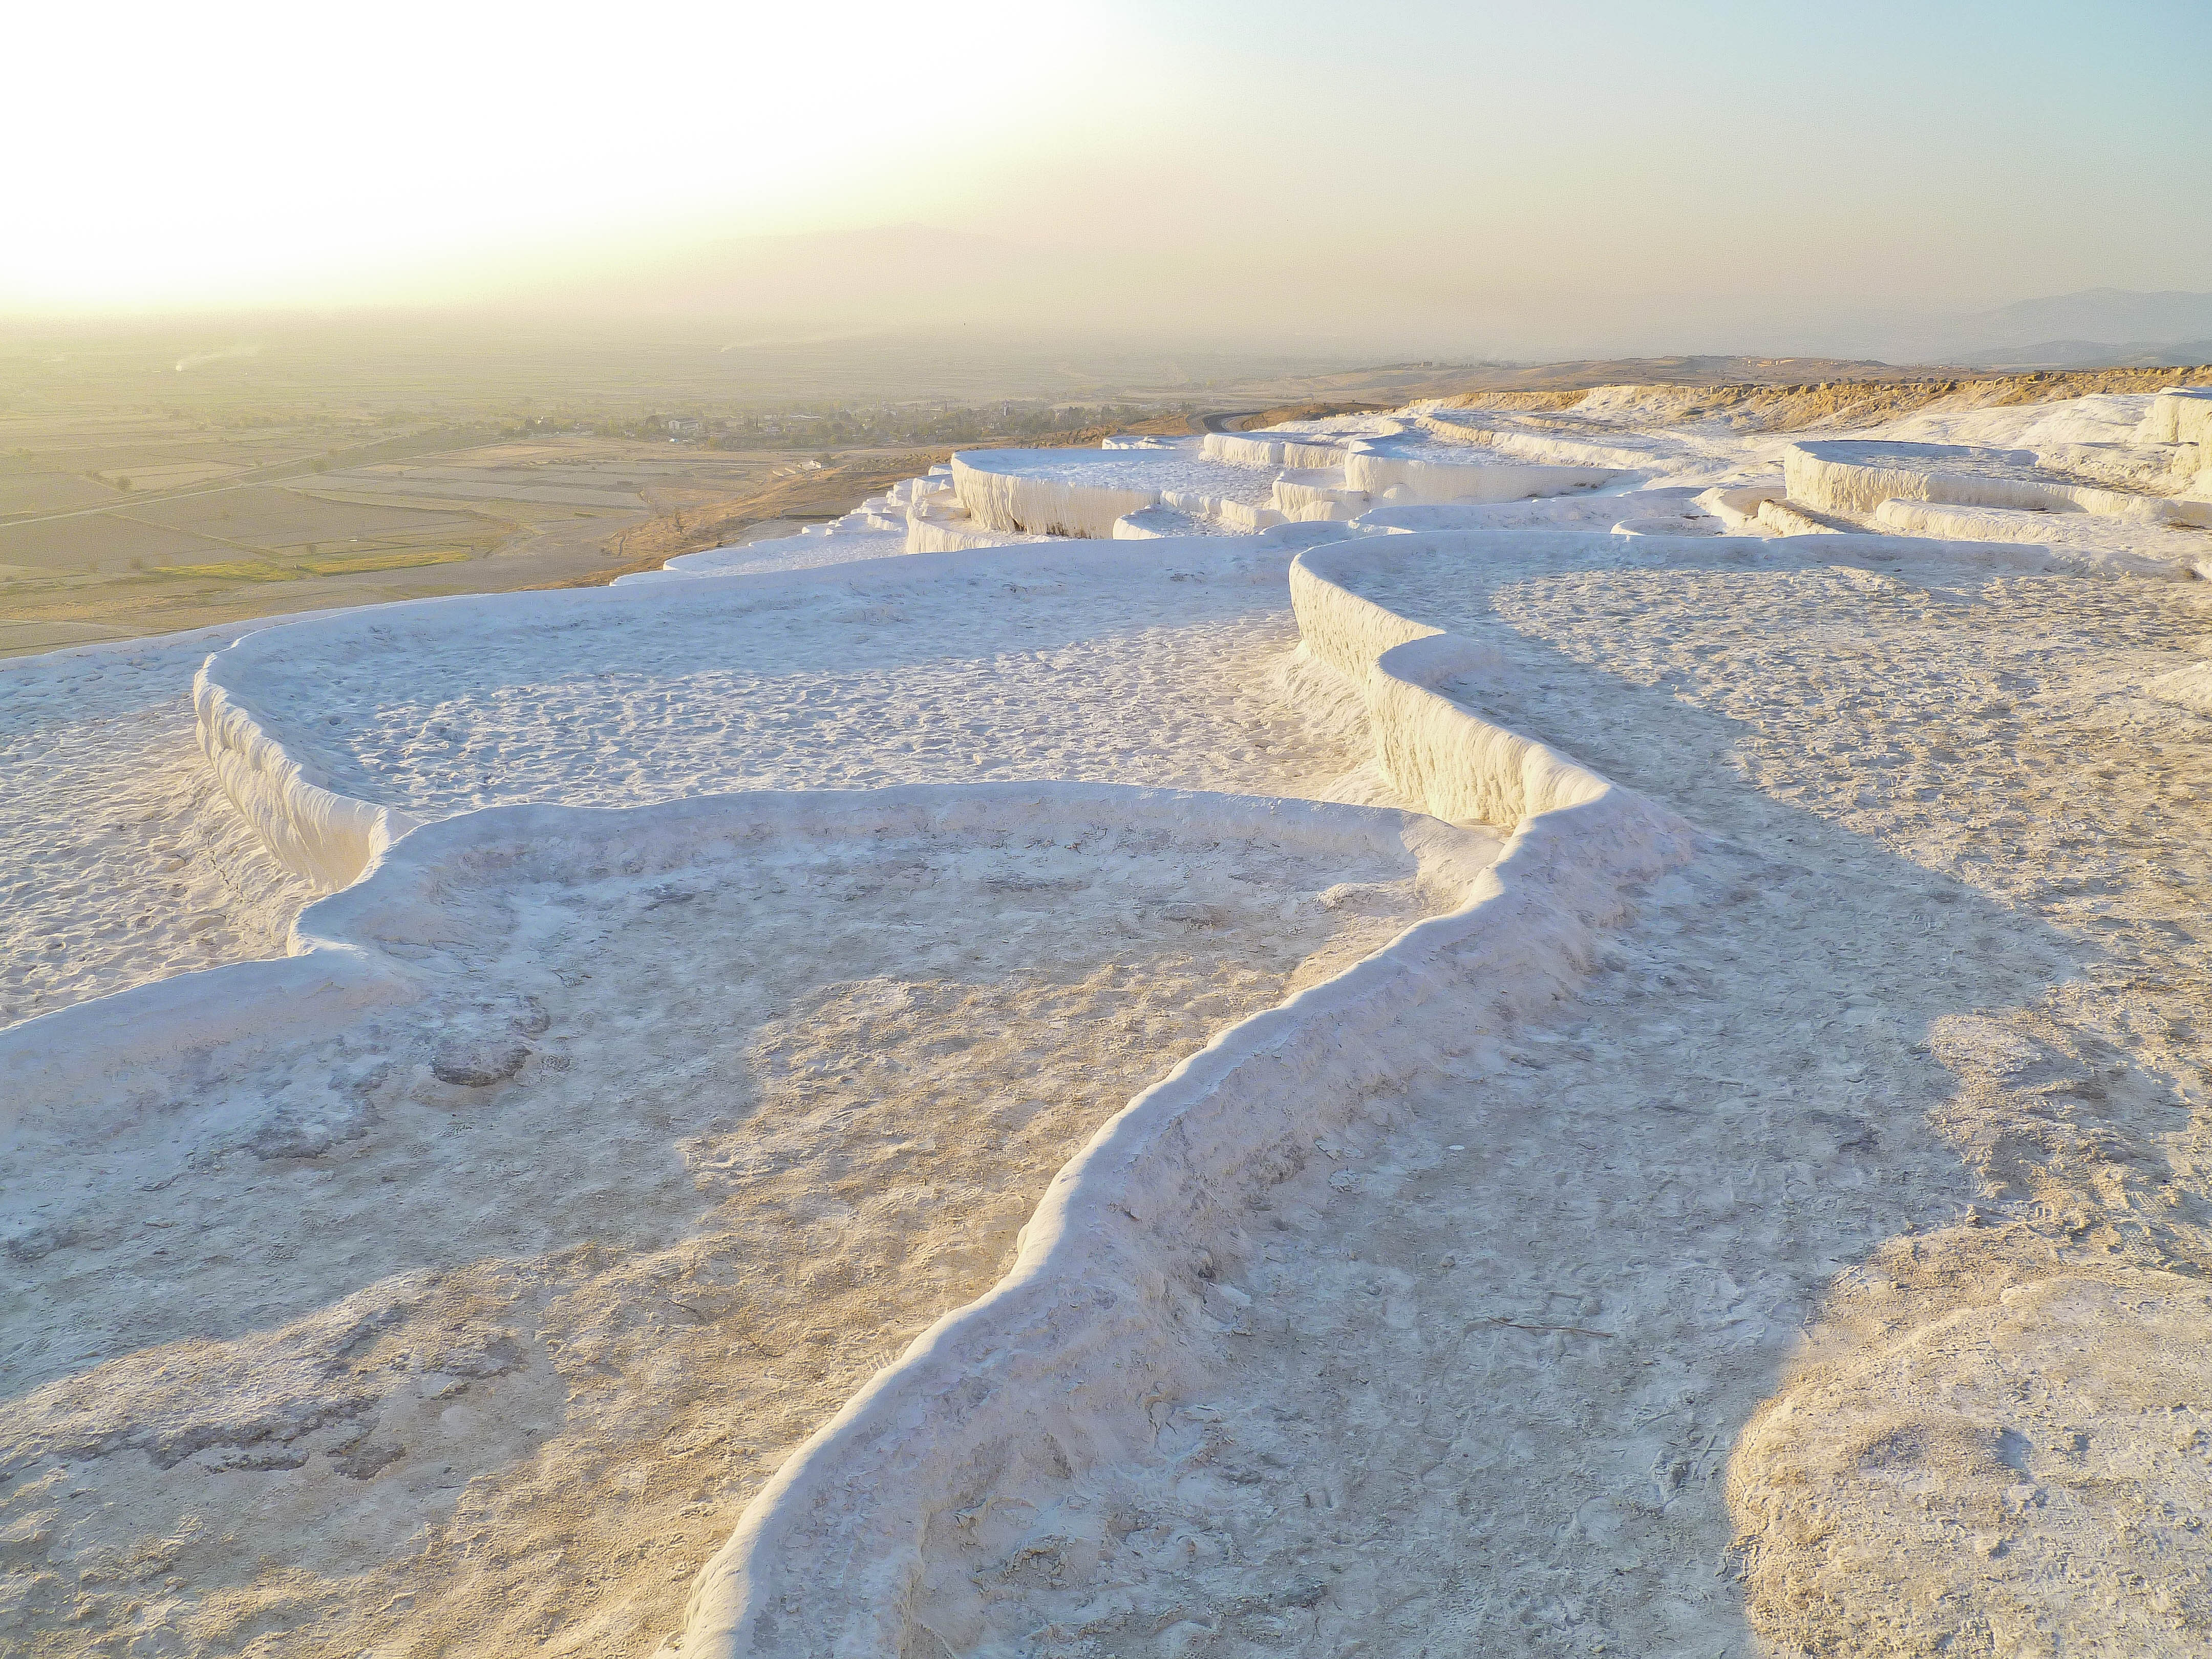 Pamukkale Wasn't What I Expected